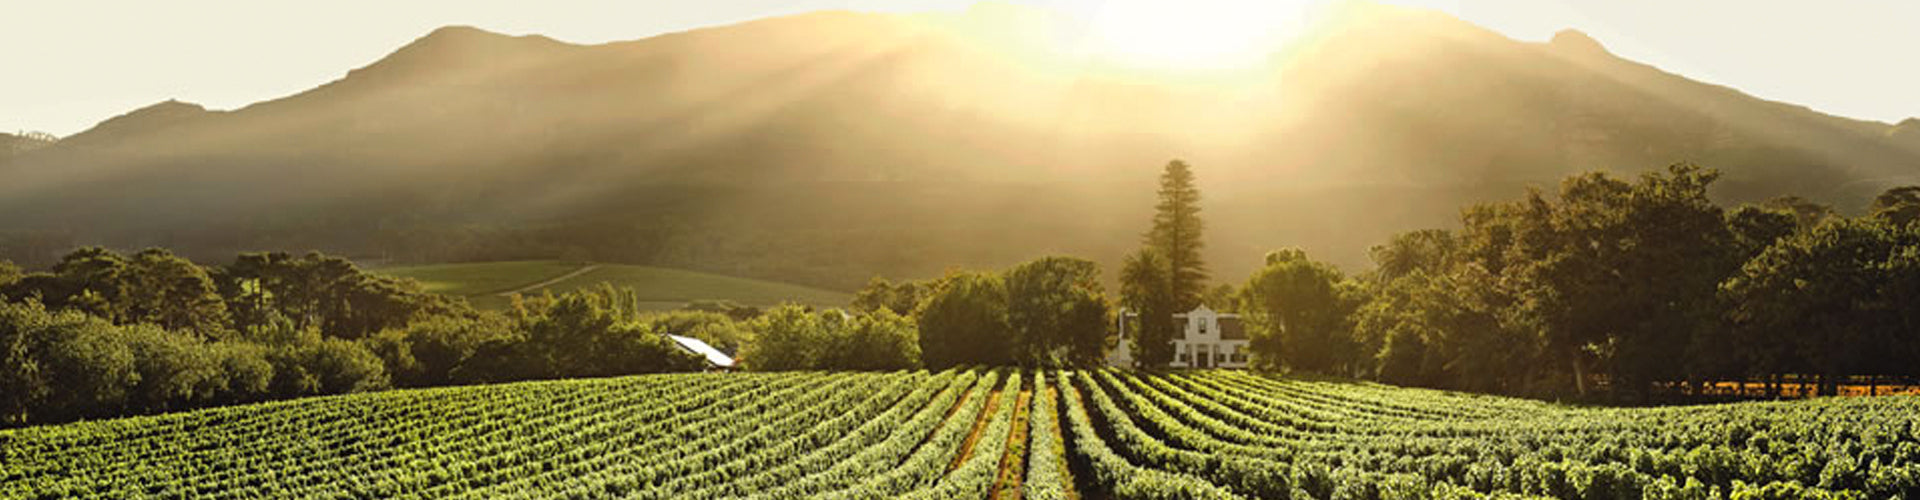 Buitenverwachting Vineyards in Constantia, South Africa